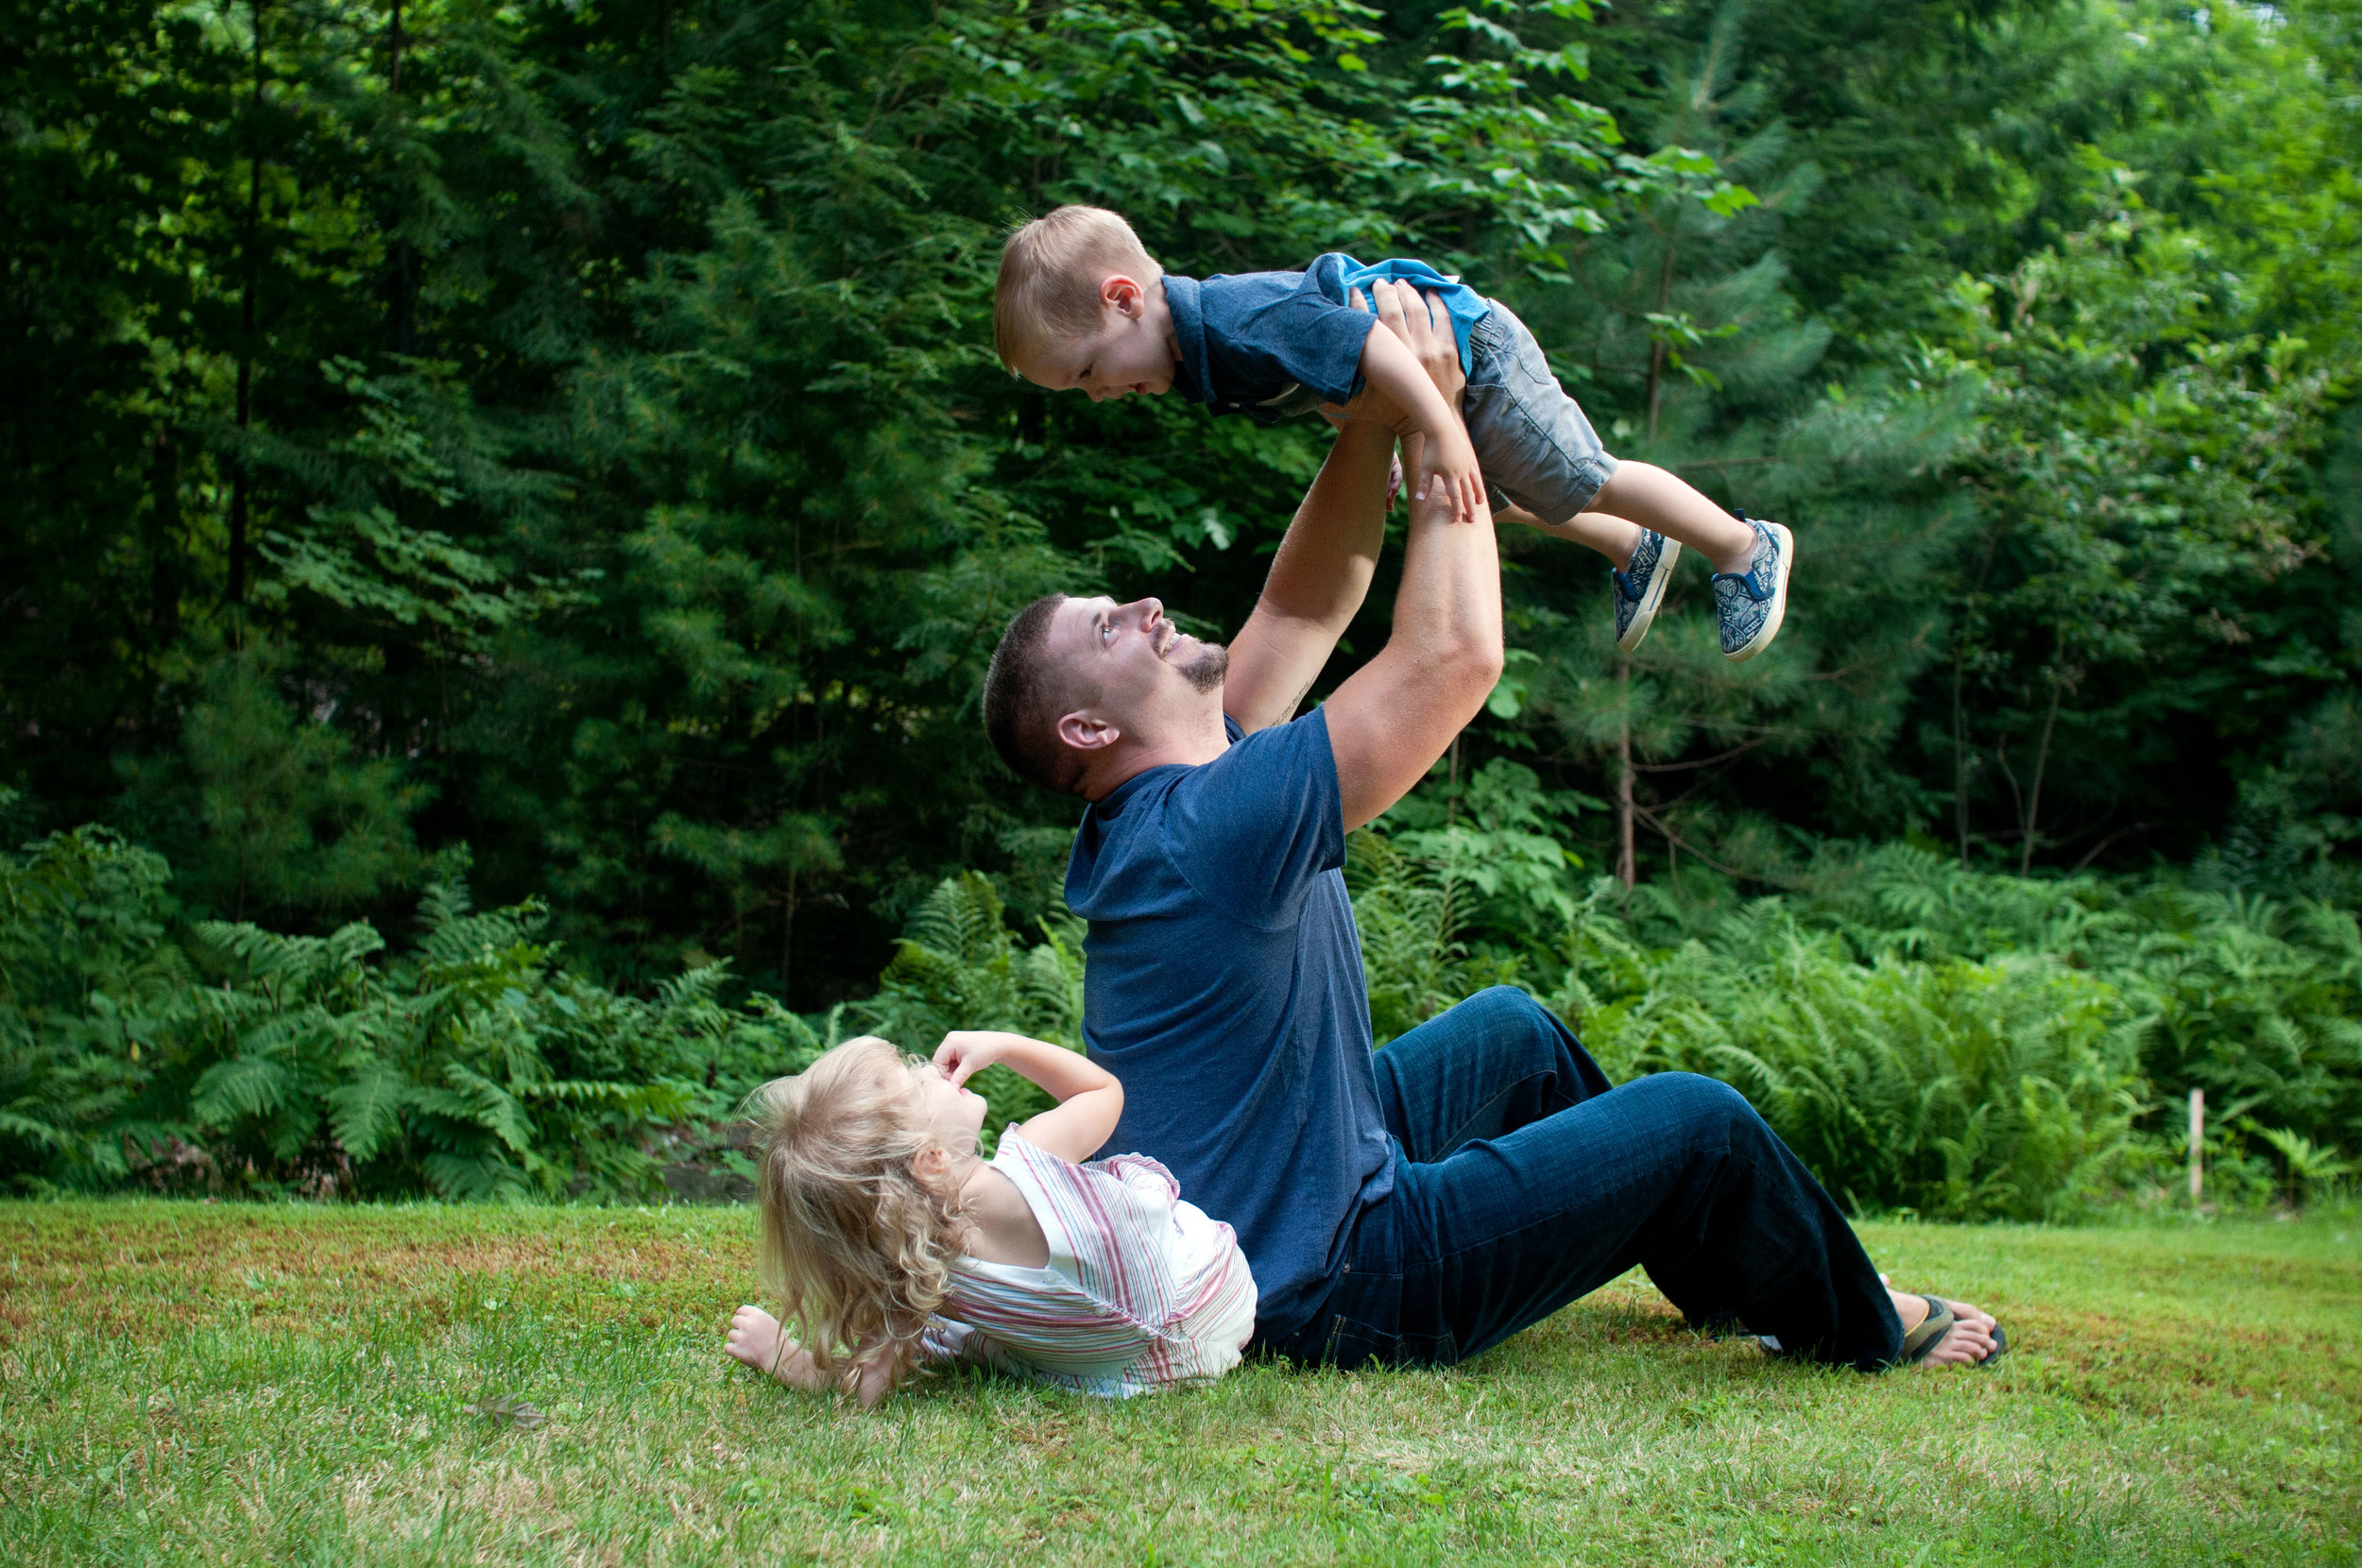 Father lifting his little boy in the air